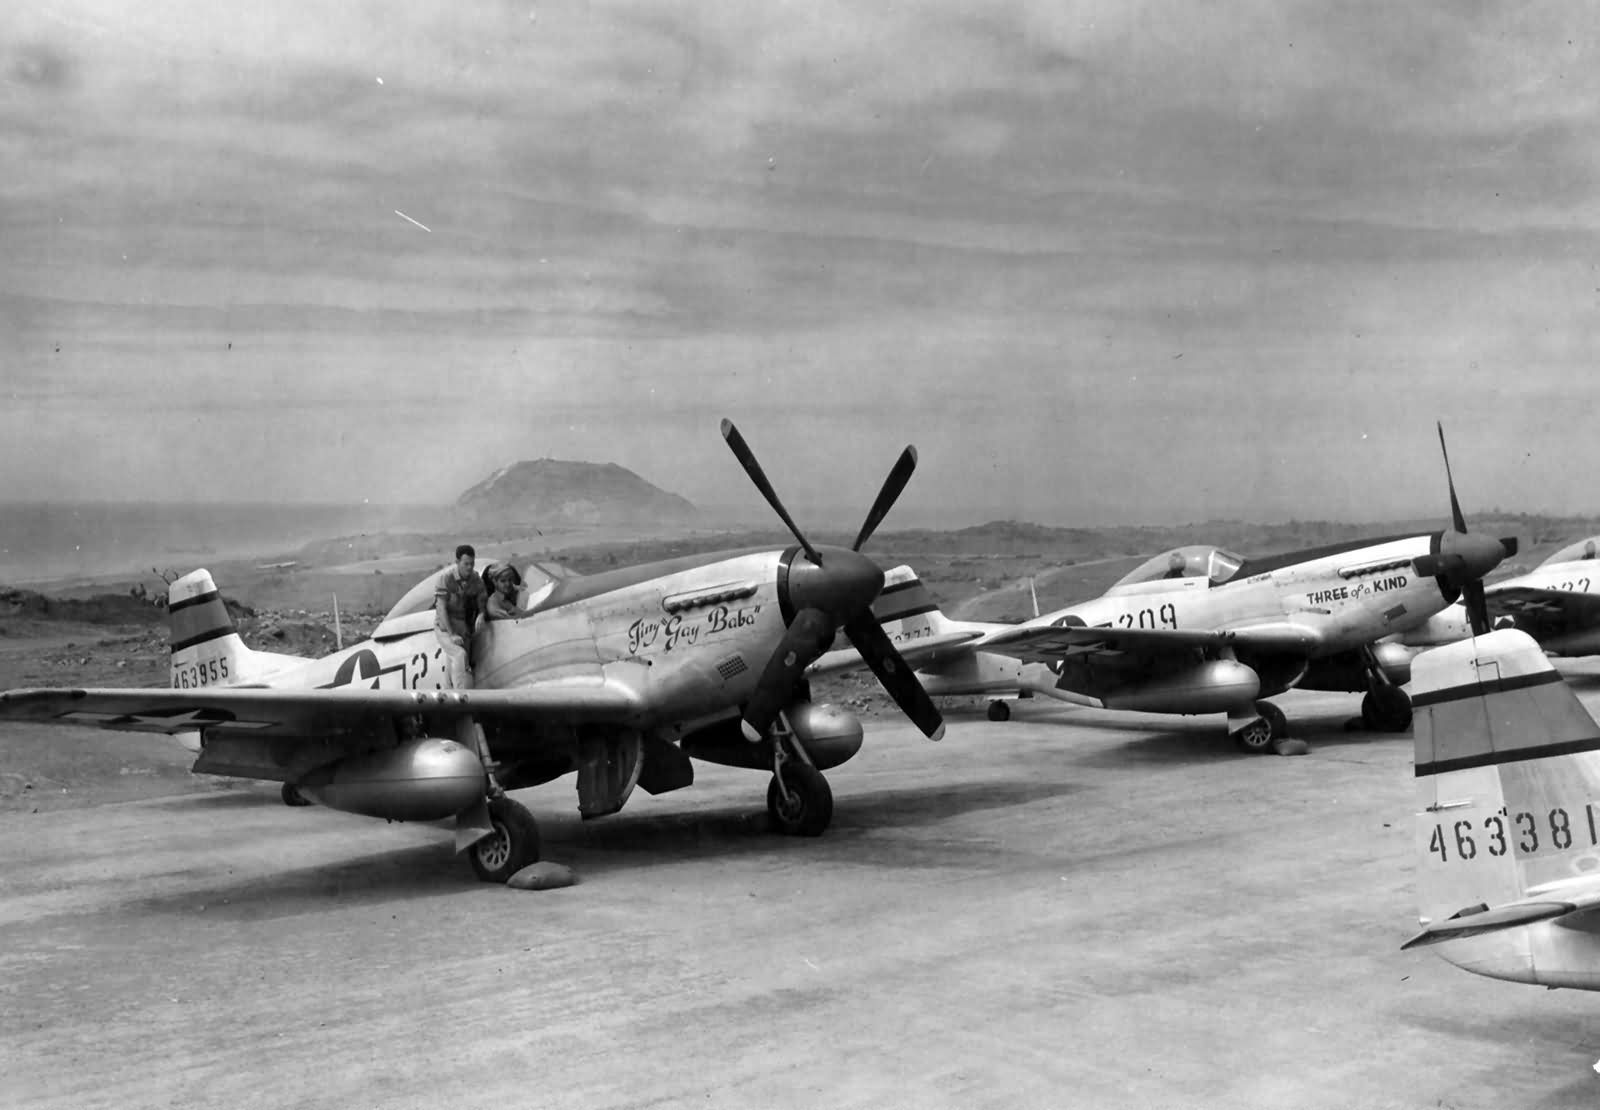 """P-51D Mustang #44-63955 """"Tiny gay Baba"""" of the 46th FS 21st Fighter Group Iwo Jima 1945."""